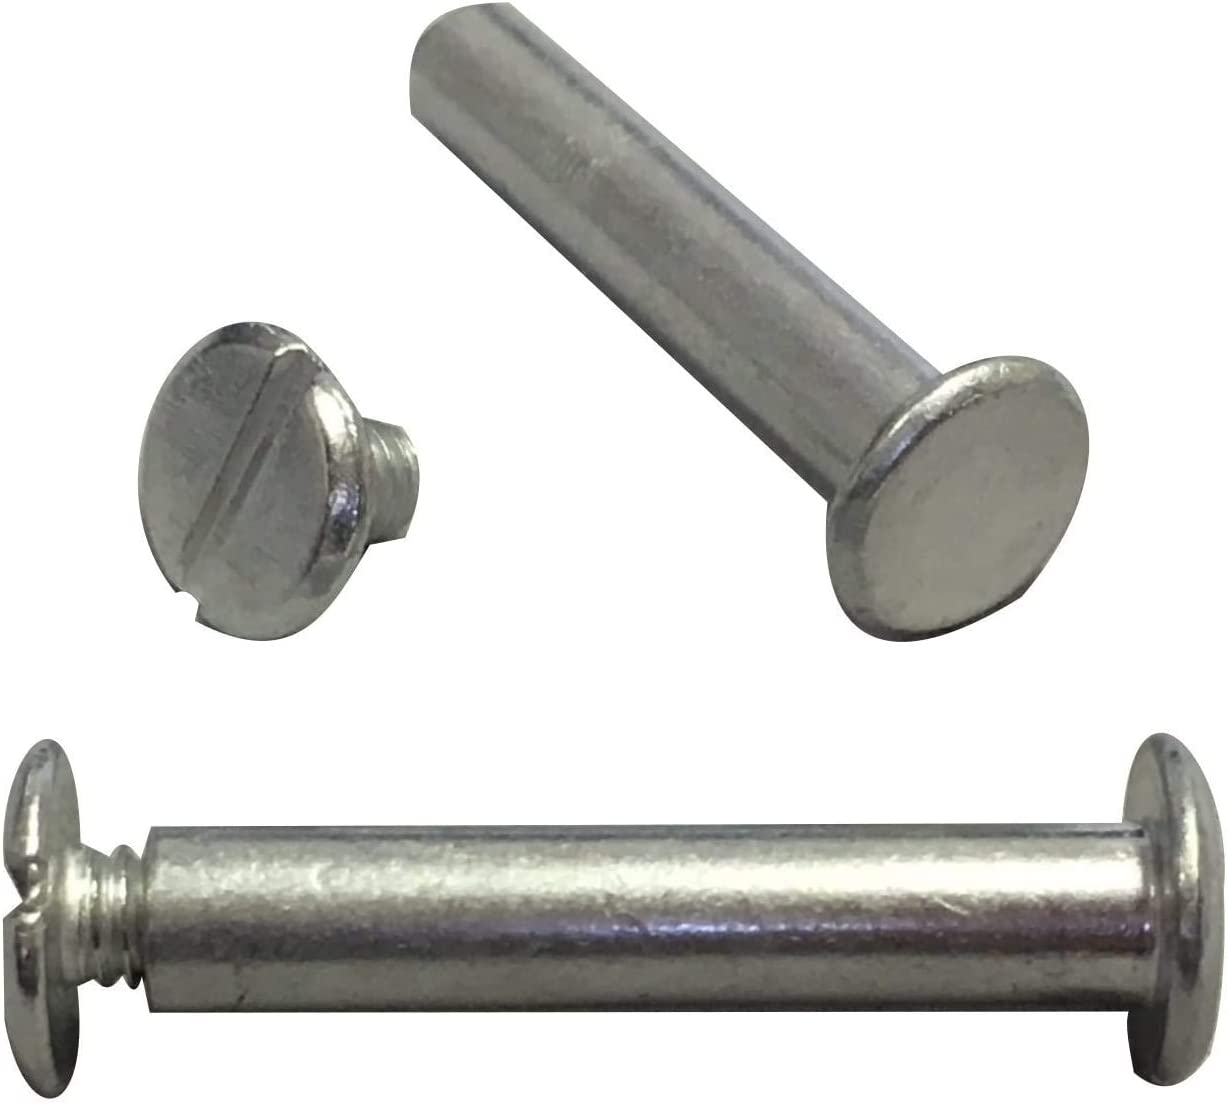 Silver Aluminum Screw Posts//Chicago Screws 100 Pack 3//4 Inch by Ring Binder Depot